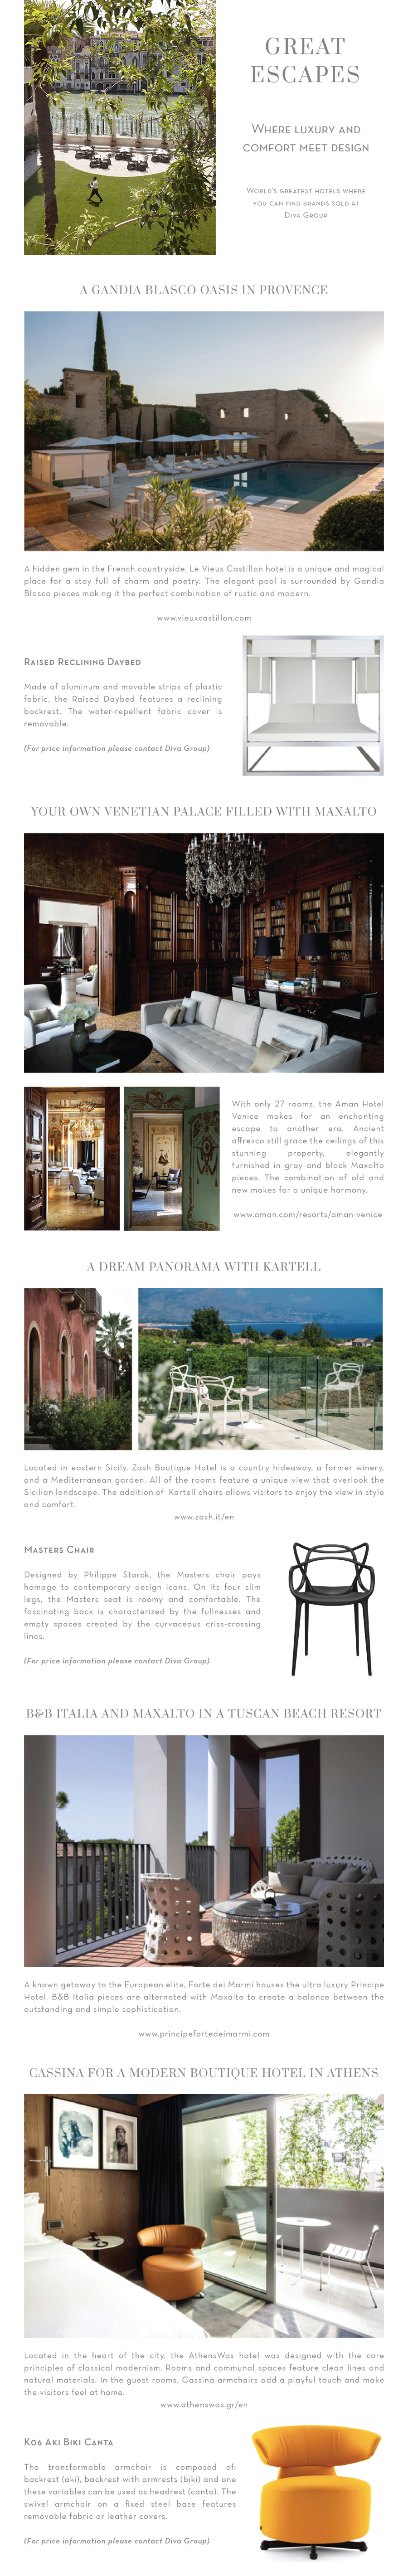 newsletter_greatescapes